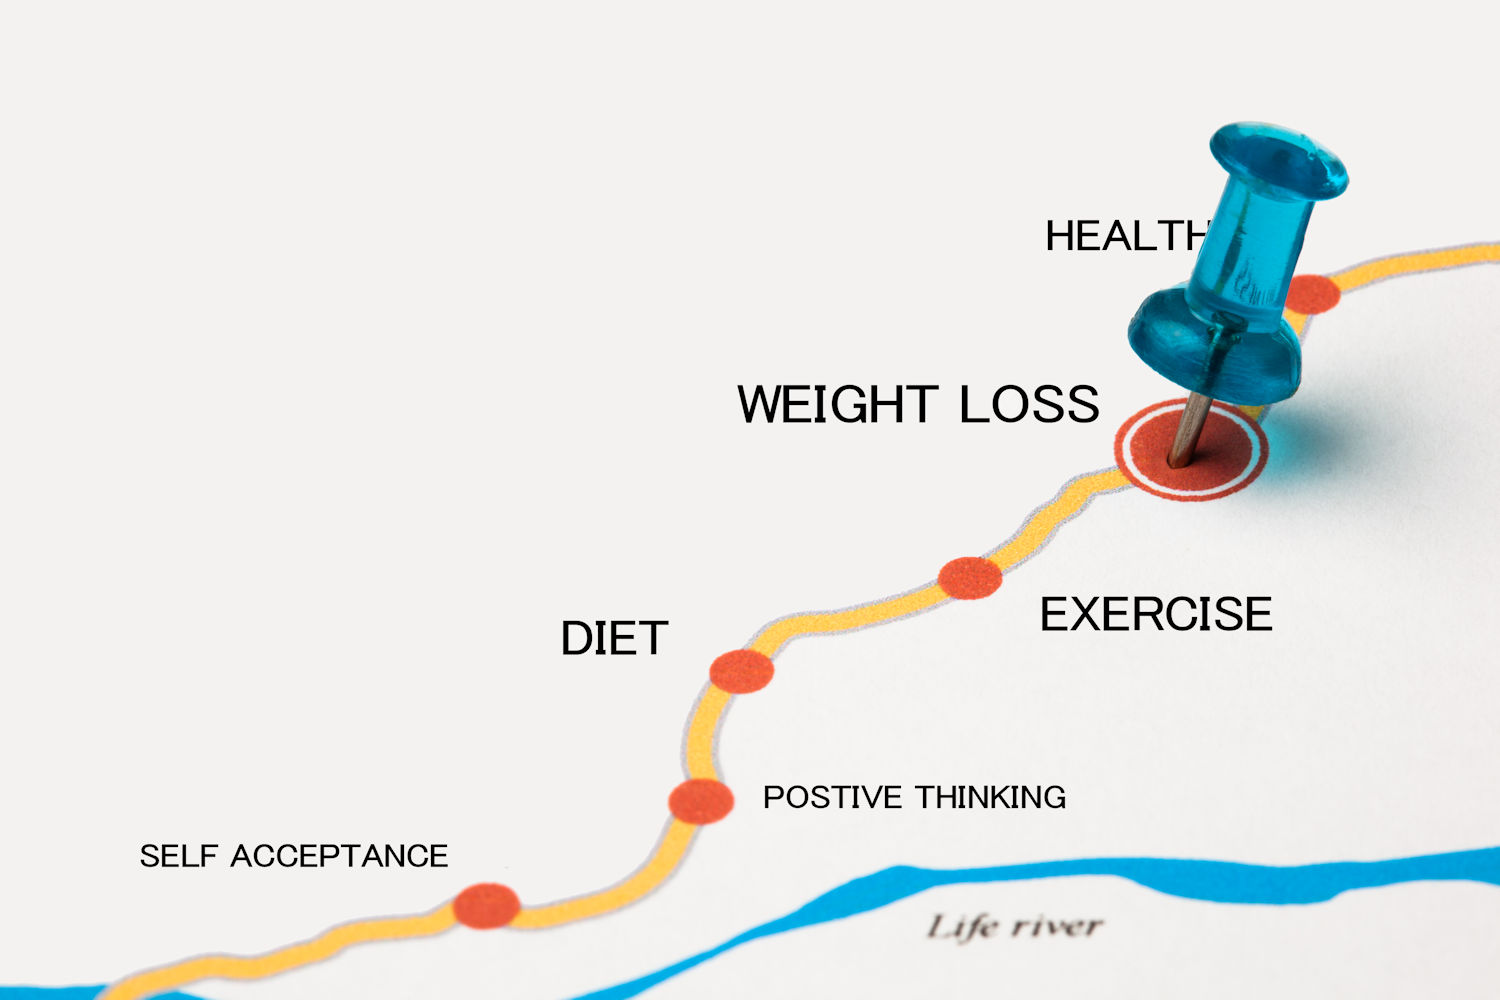 Diet vs Exercise: route to weight loss